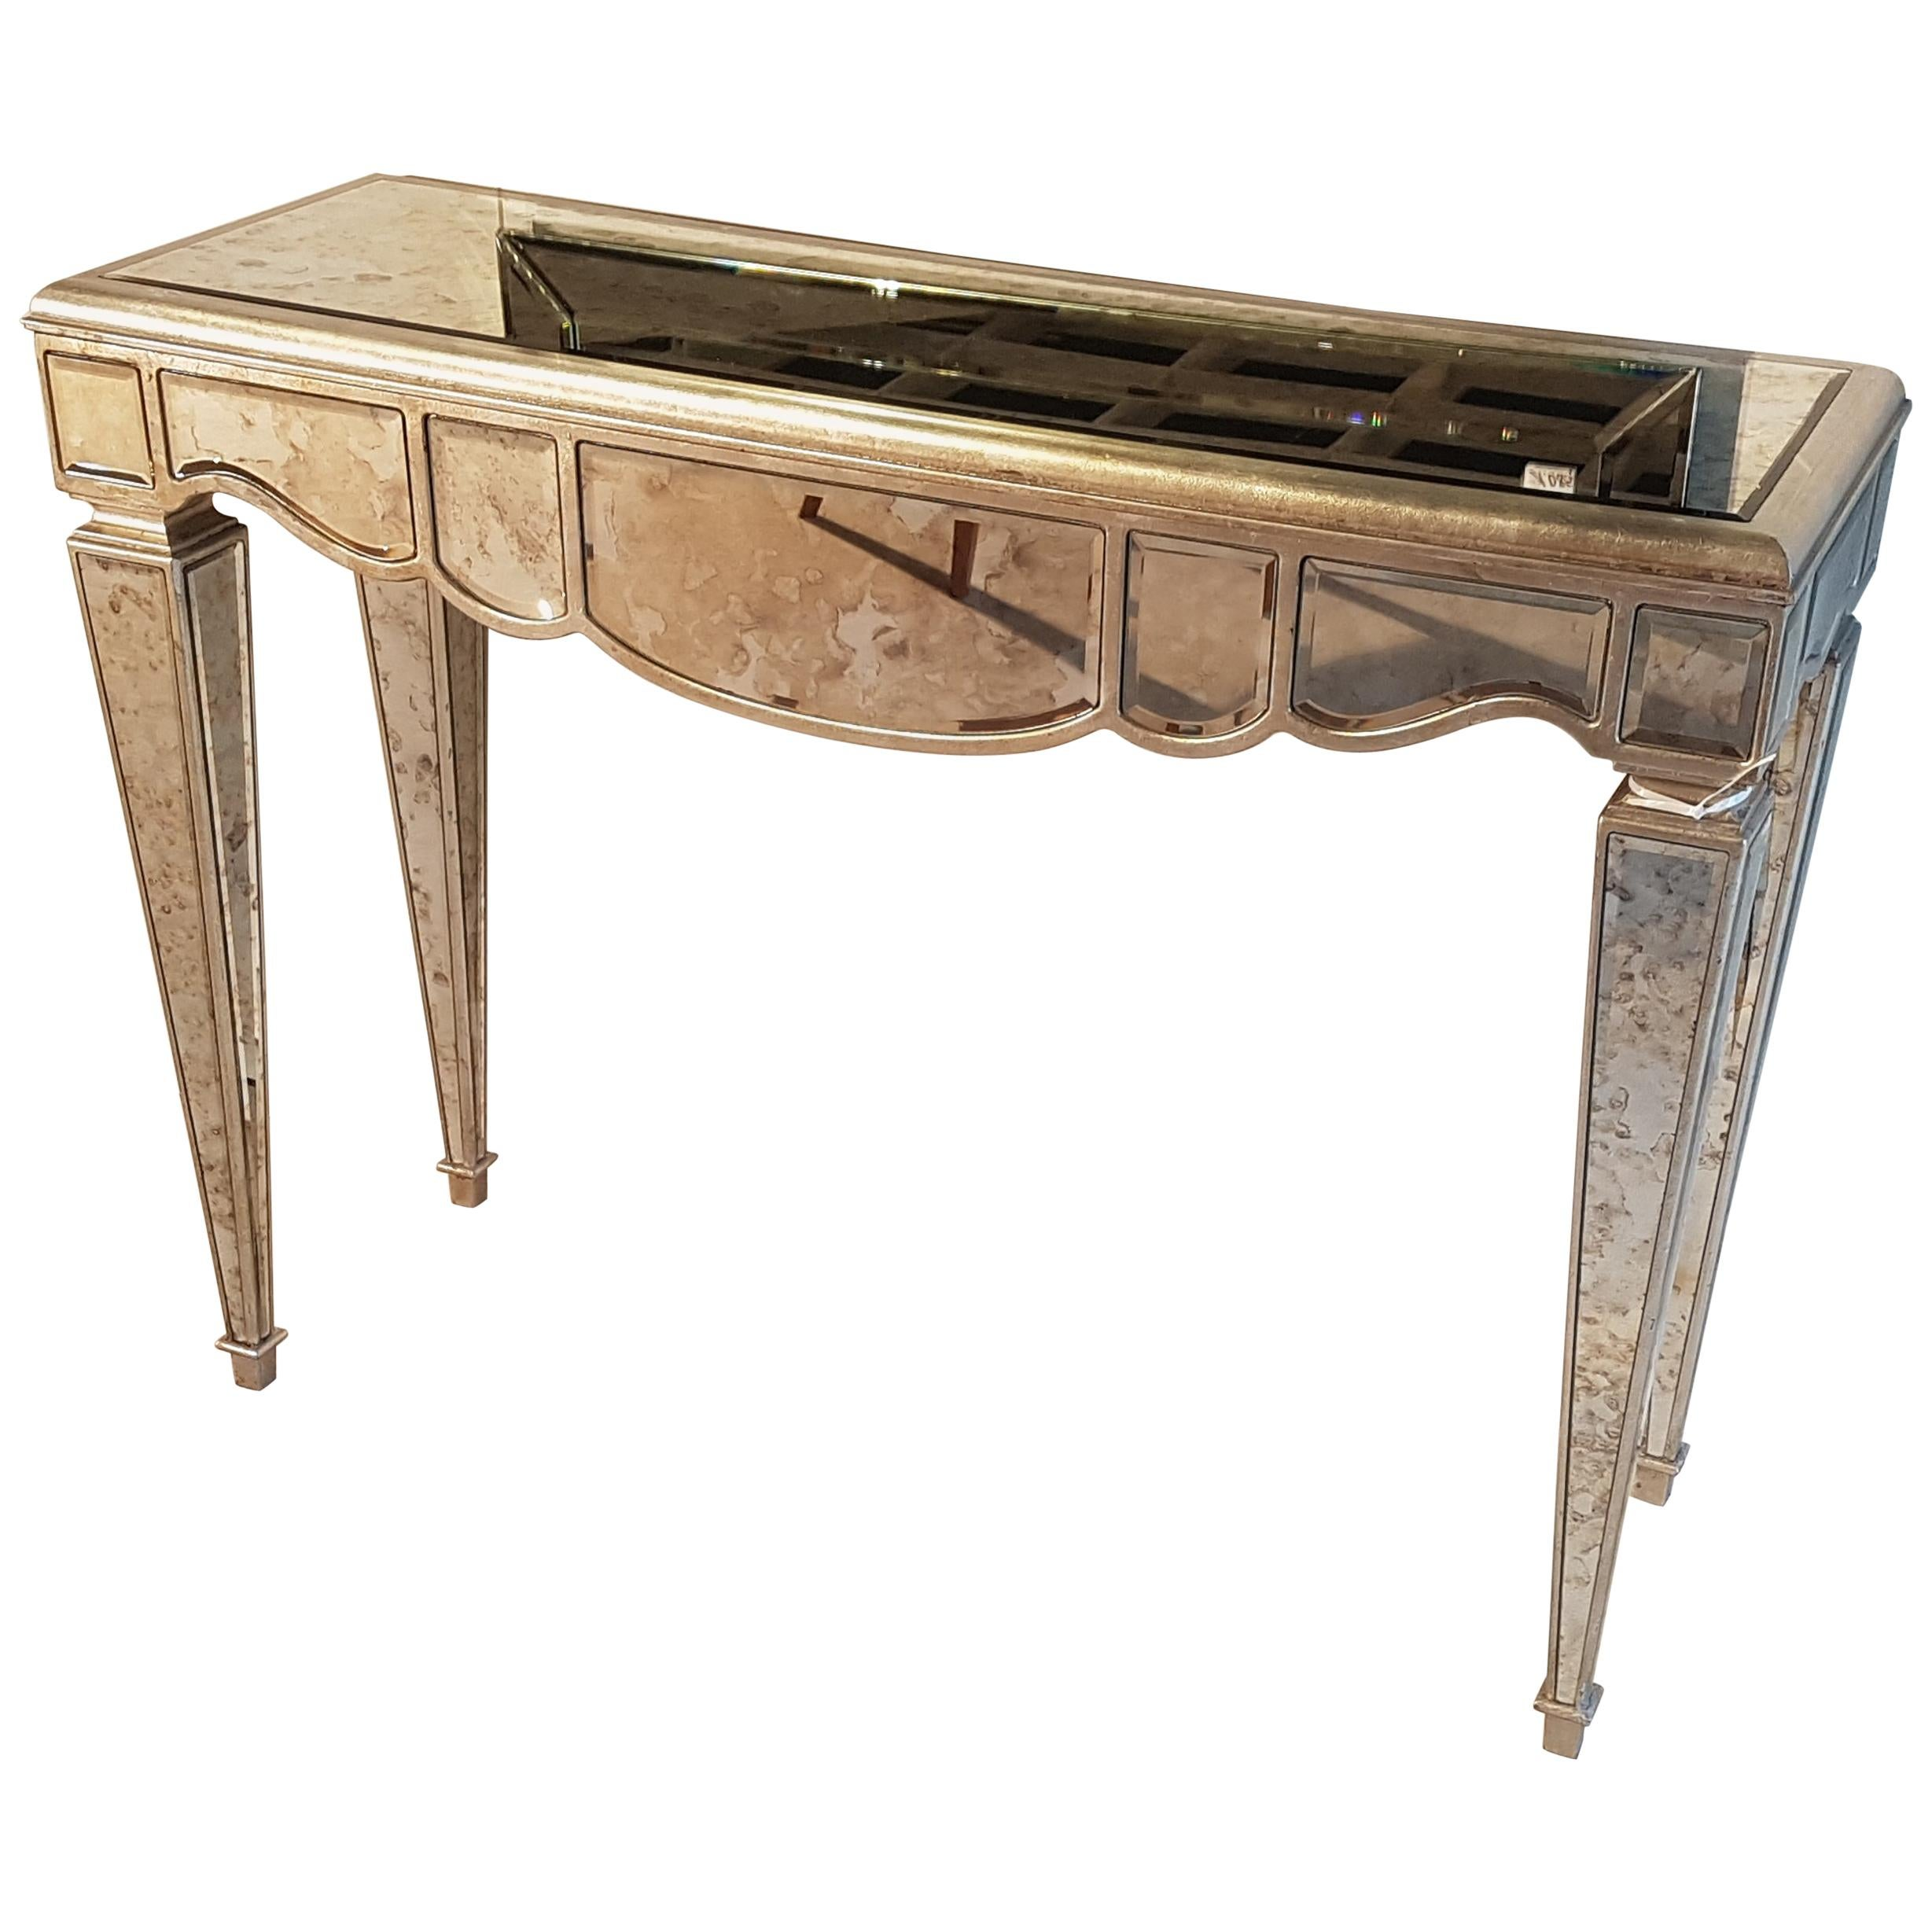 Shabby Chic Mirrored Console Table Design For Sale